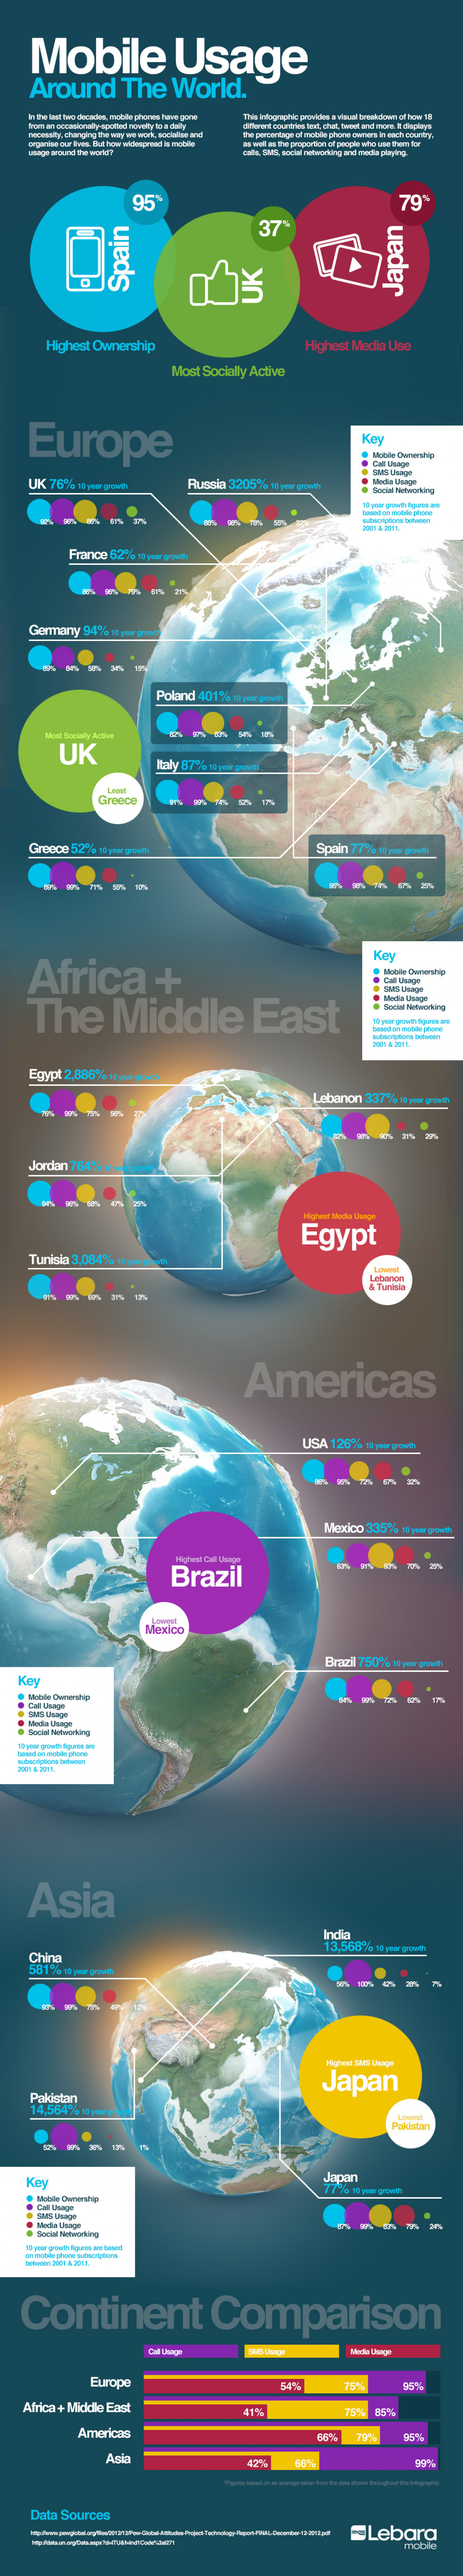 Mobile Usage Around The World Infographic